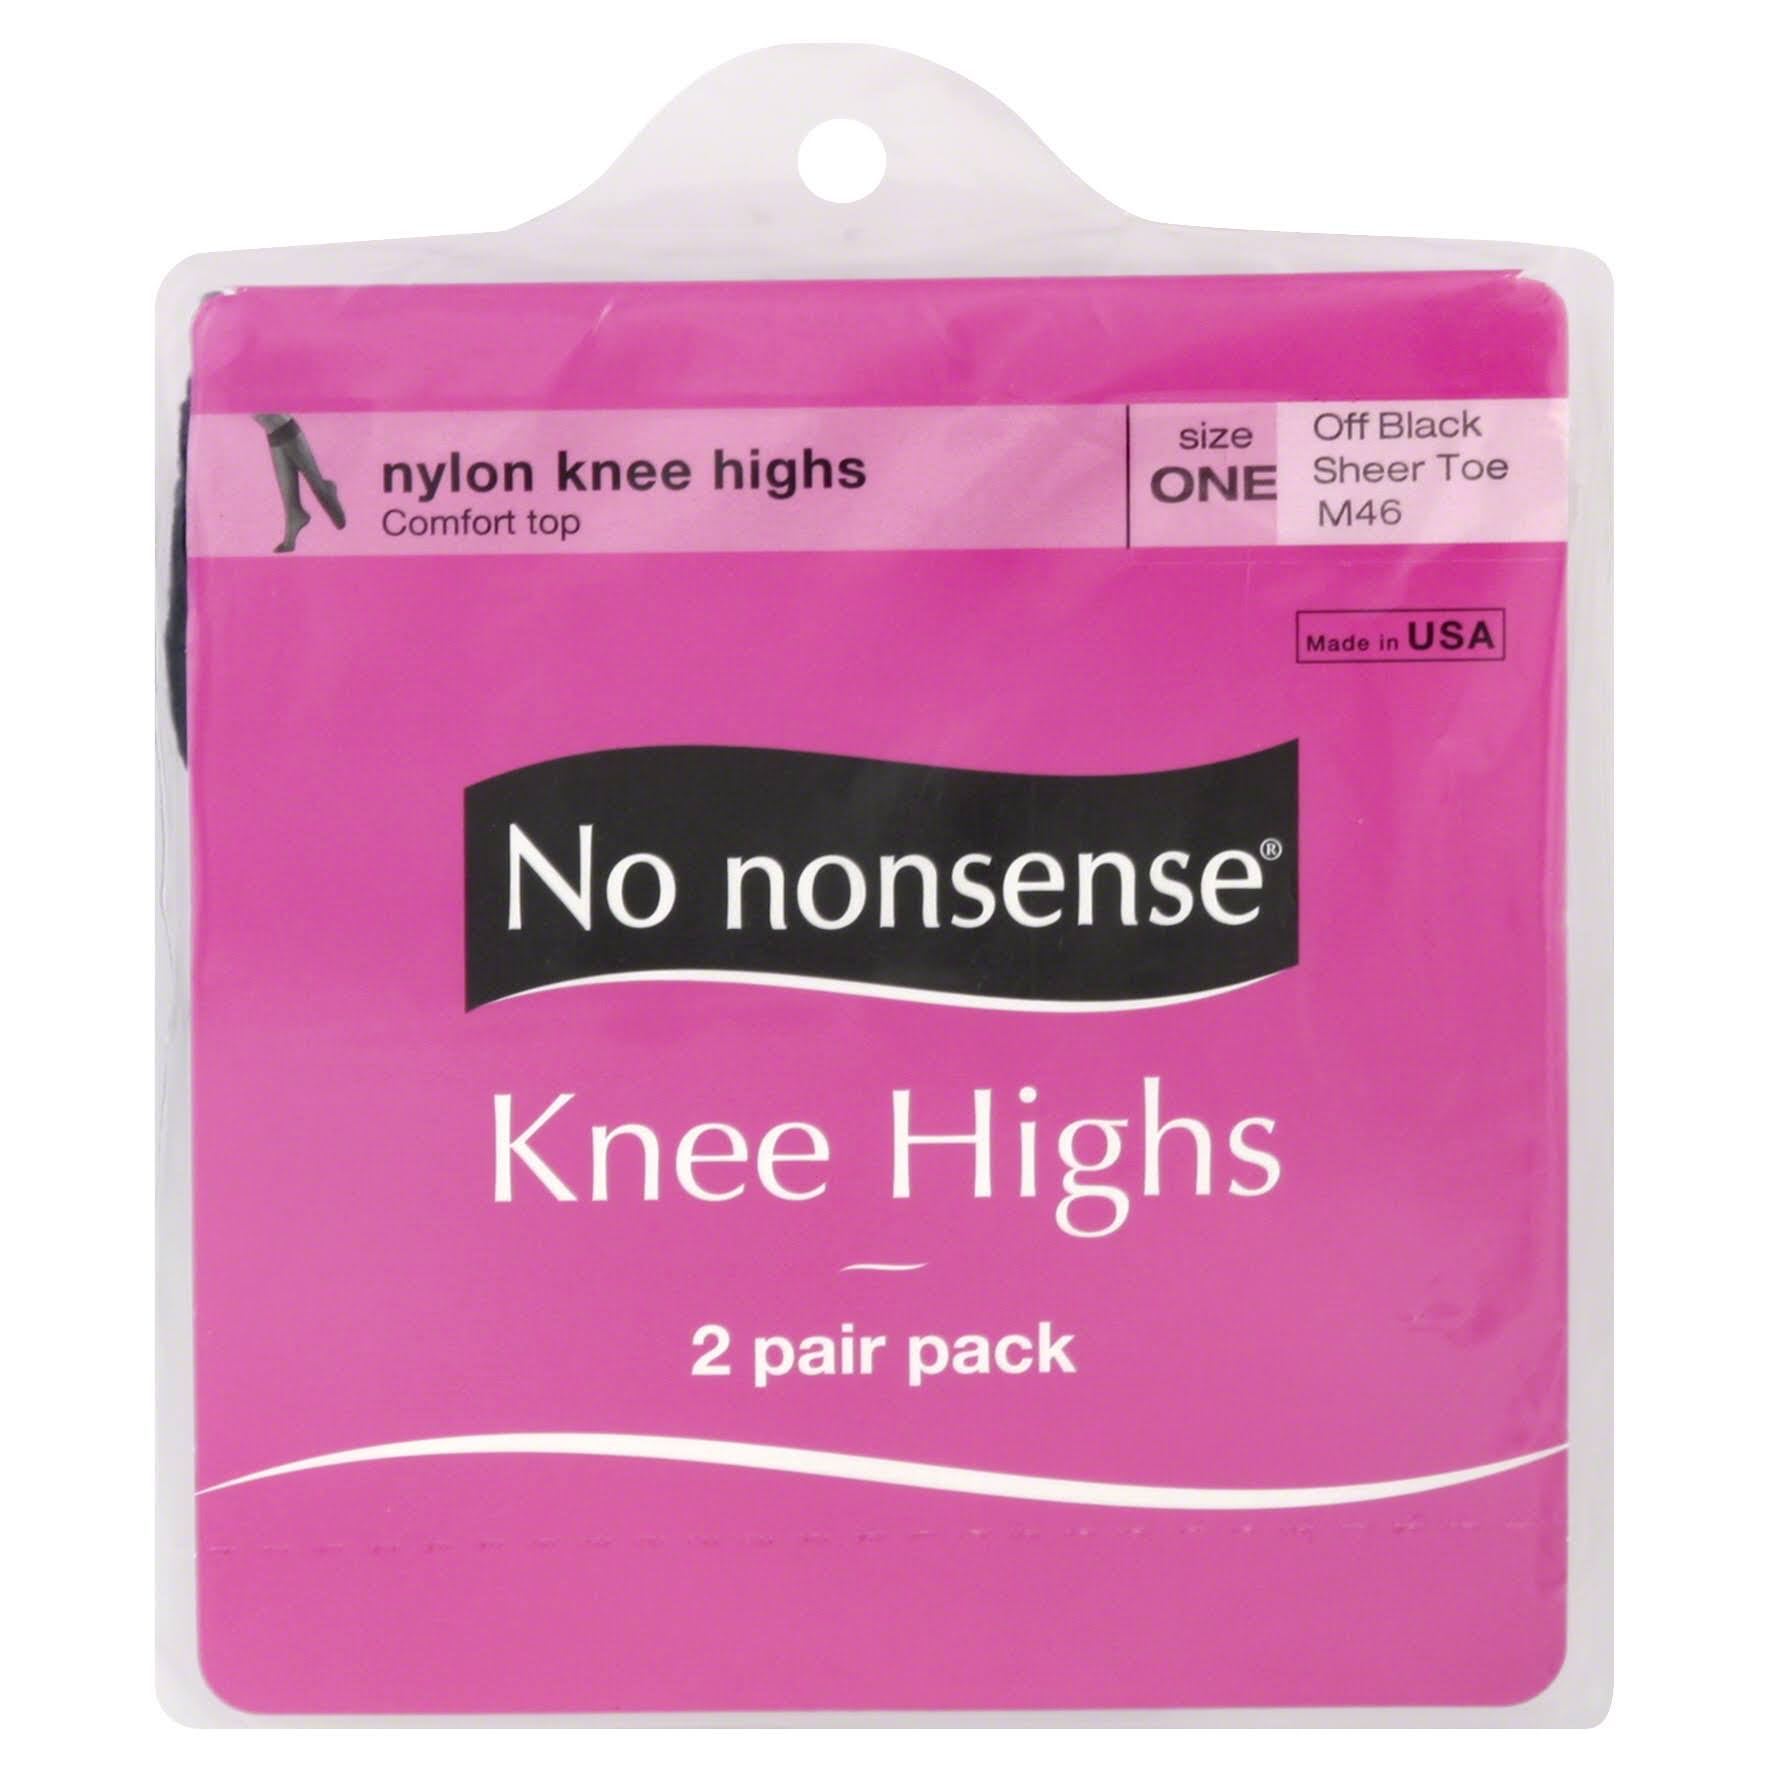 No Nonsense Knee High - One Size, Off Black